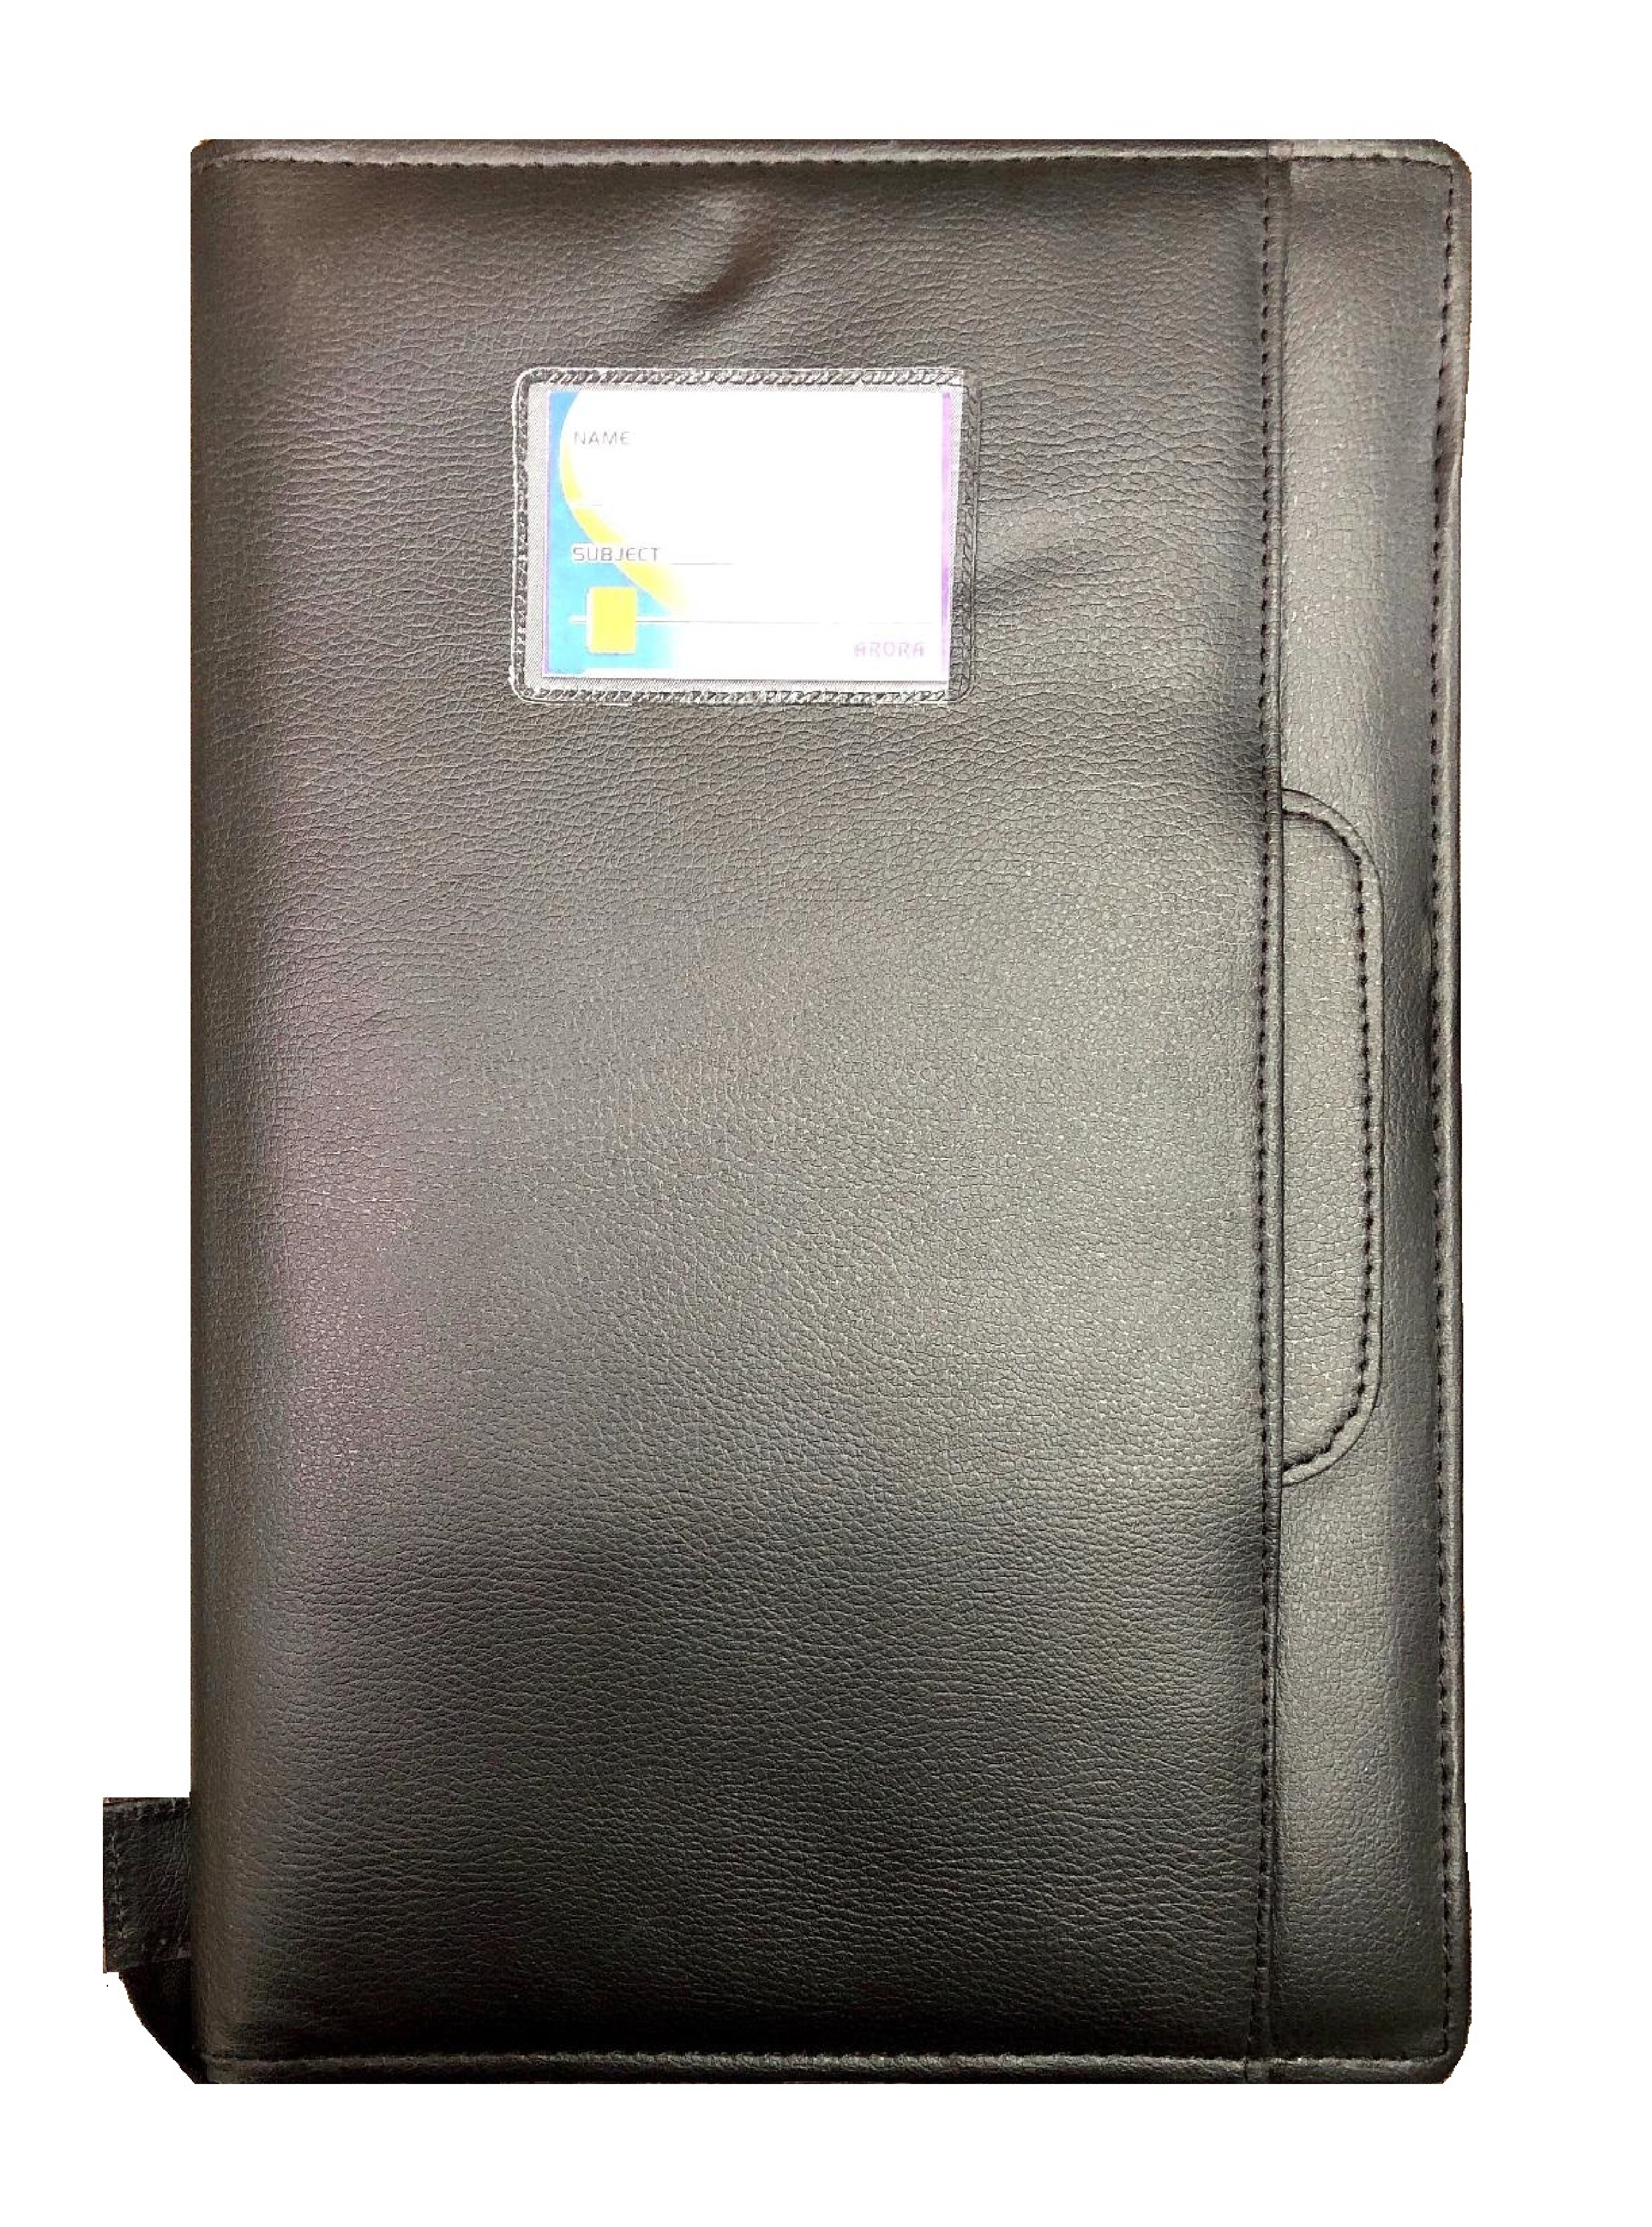 Executive File Folder with Adjustable Handle, F/S Size